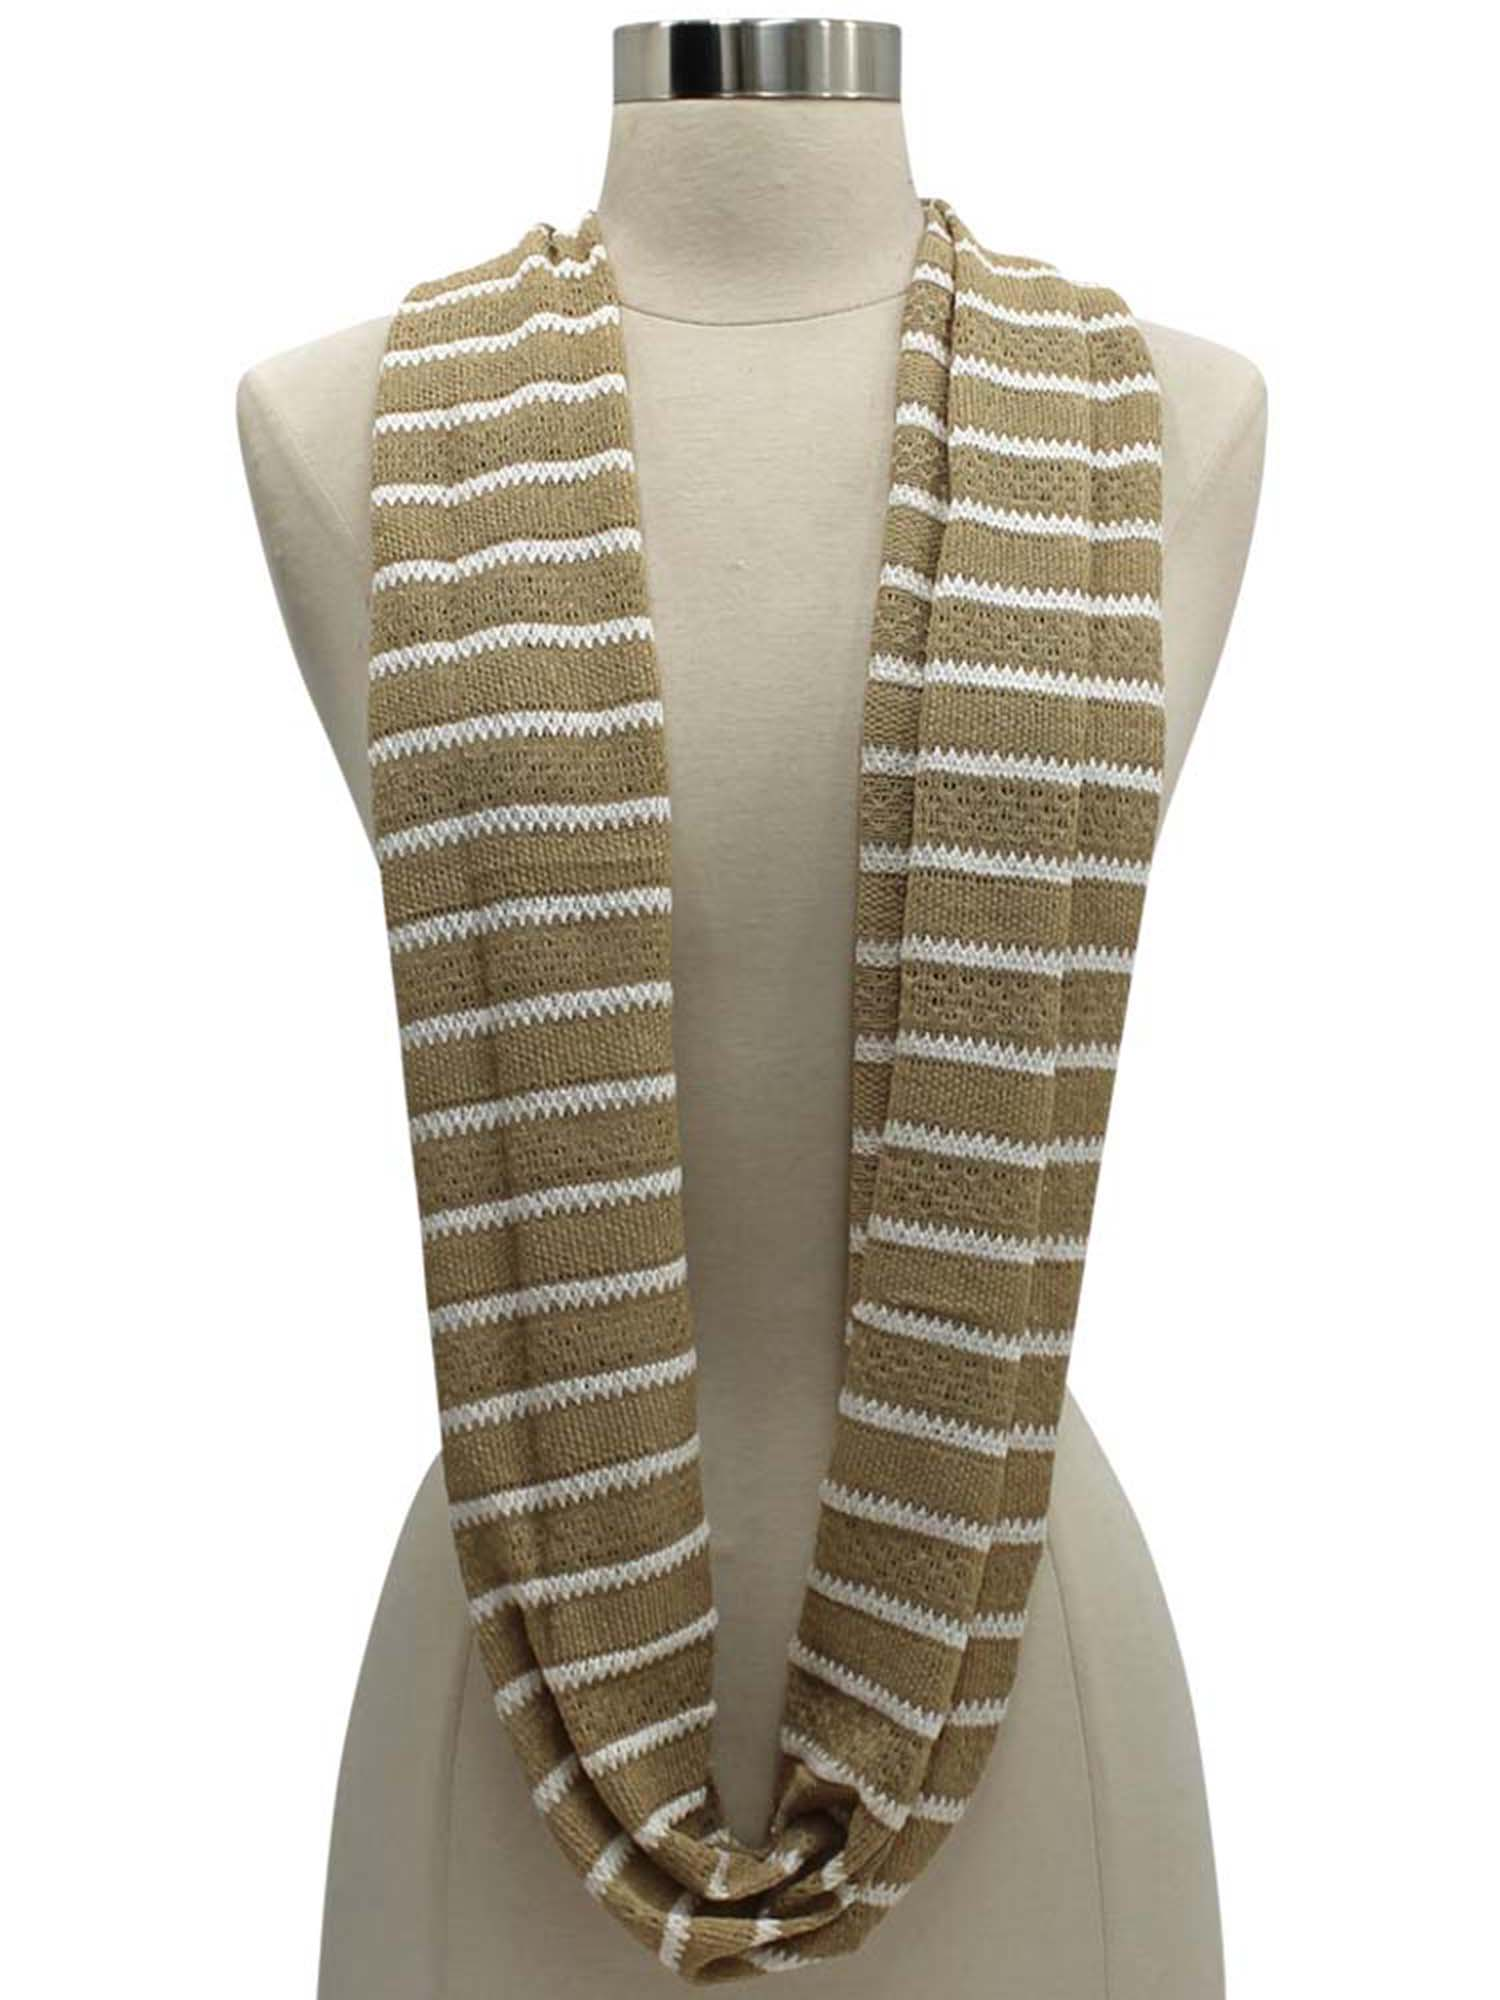 STRIPED COTTON KNIT LIGHTWEIGHT CIRCLE INFINITY SCARF | eBay